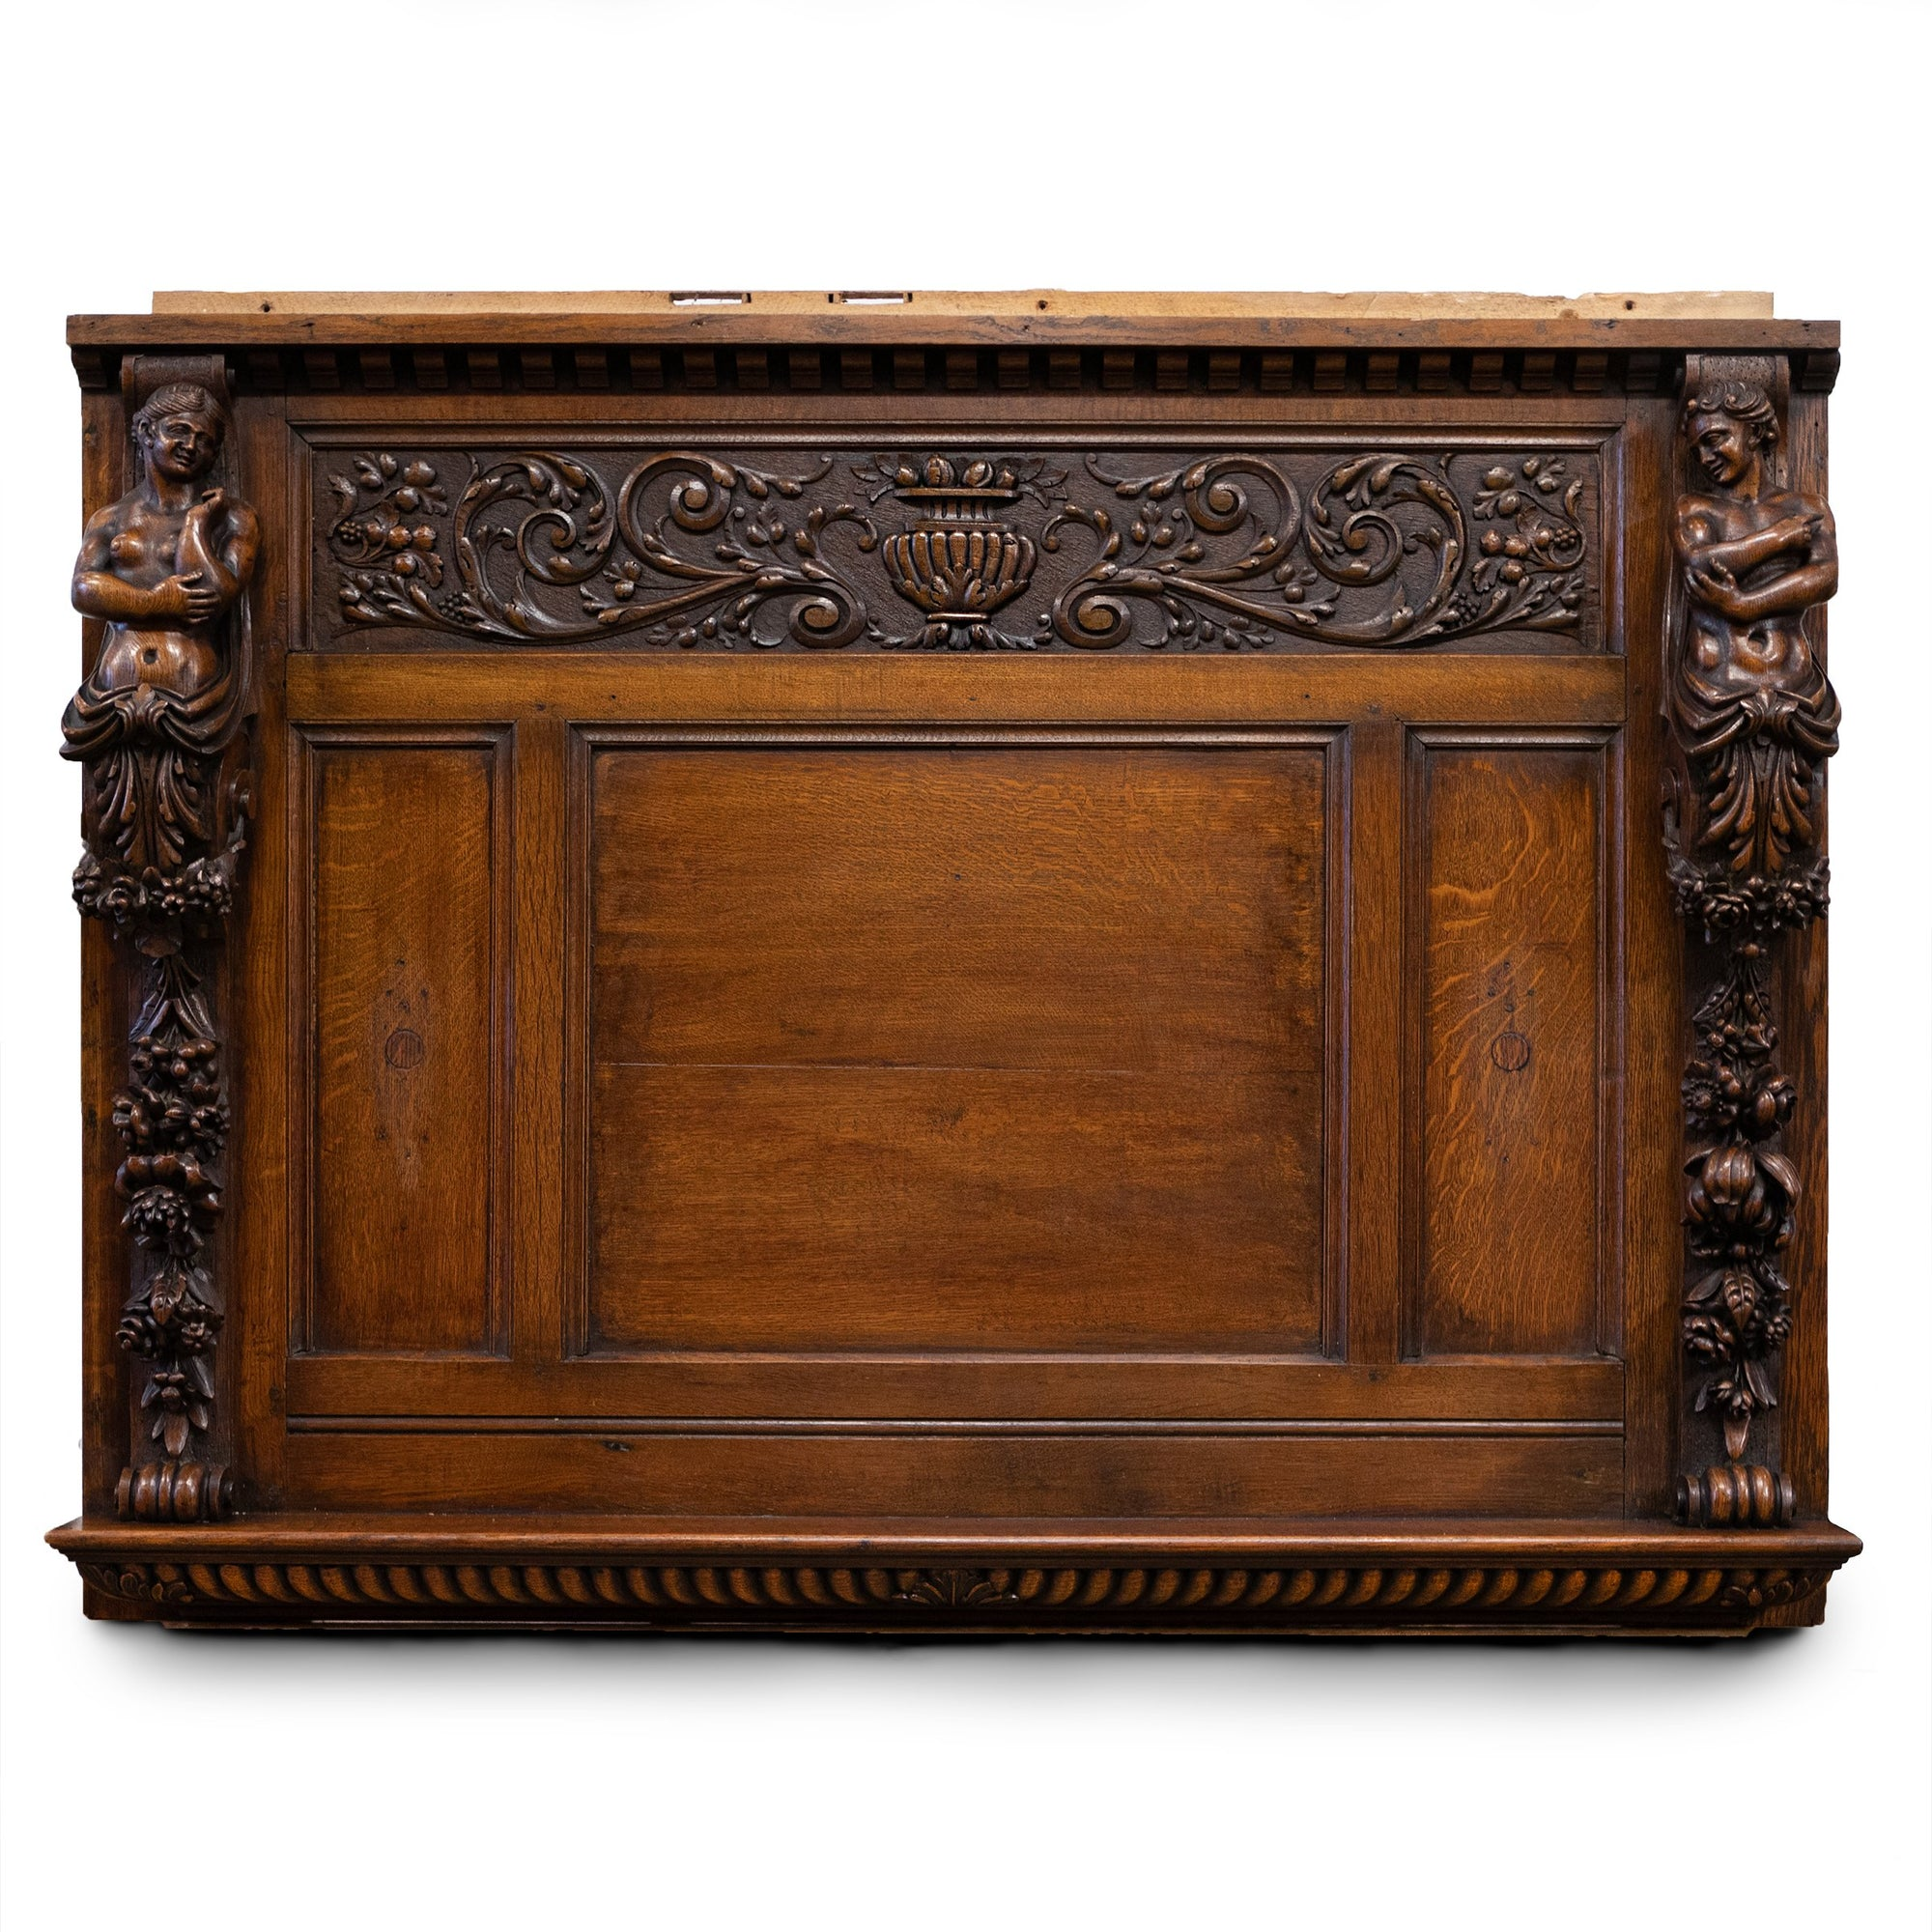 Antique Heavily Carved Oak Wooden Element | Overmantle | The Architectural Forum